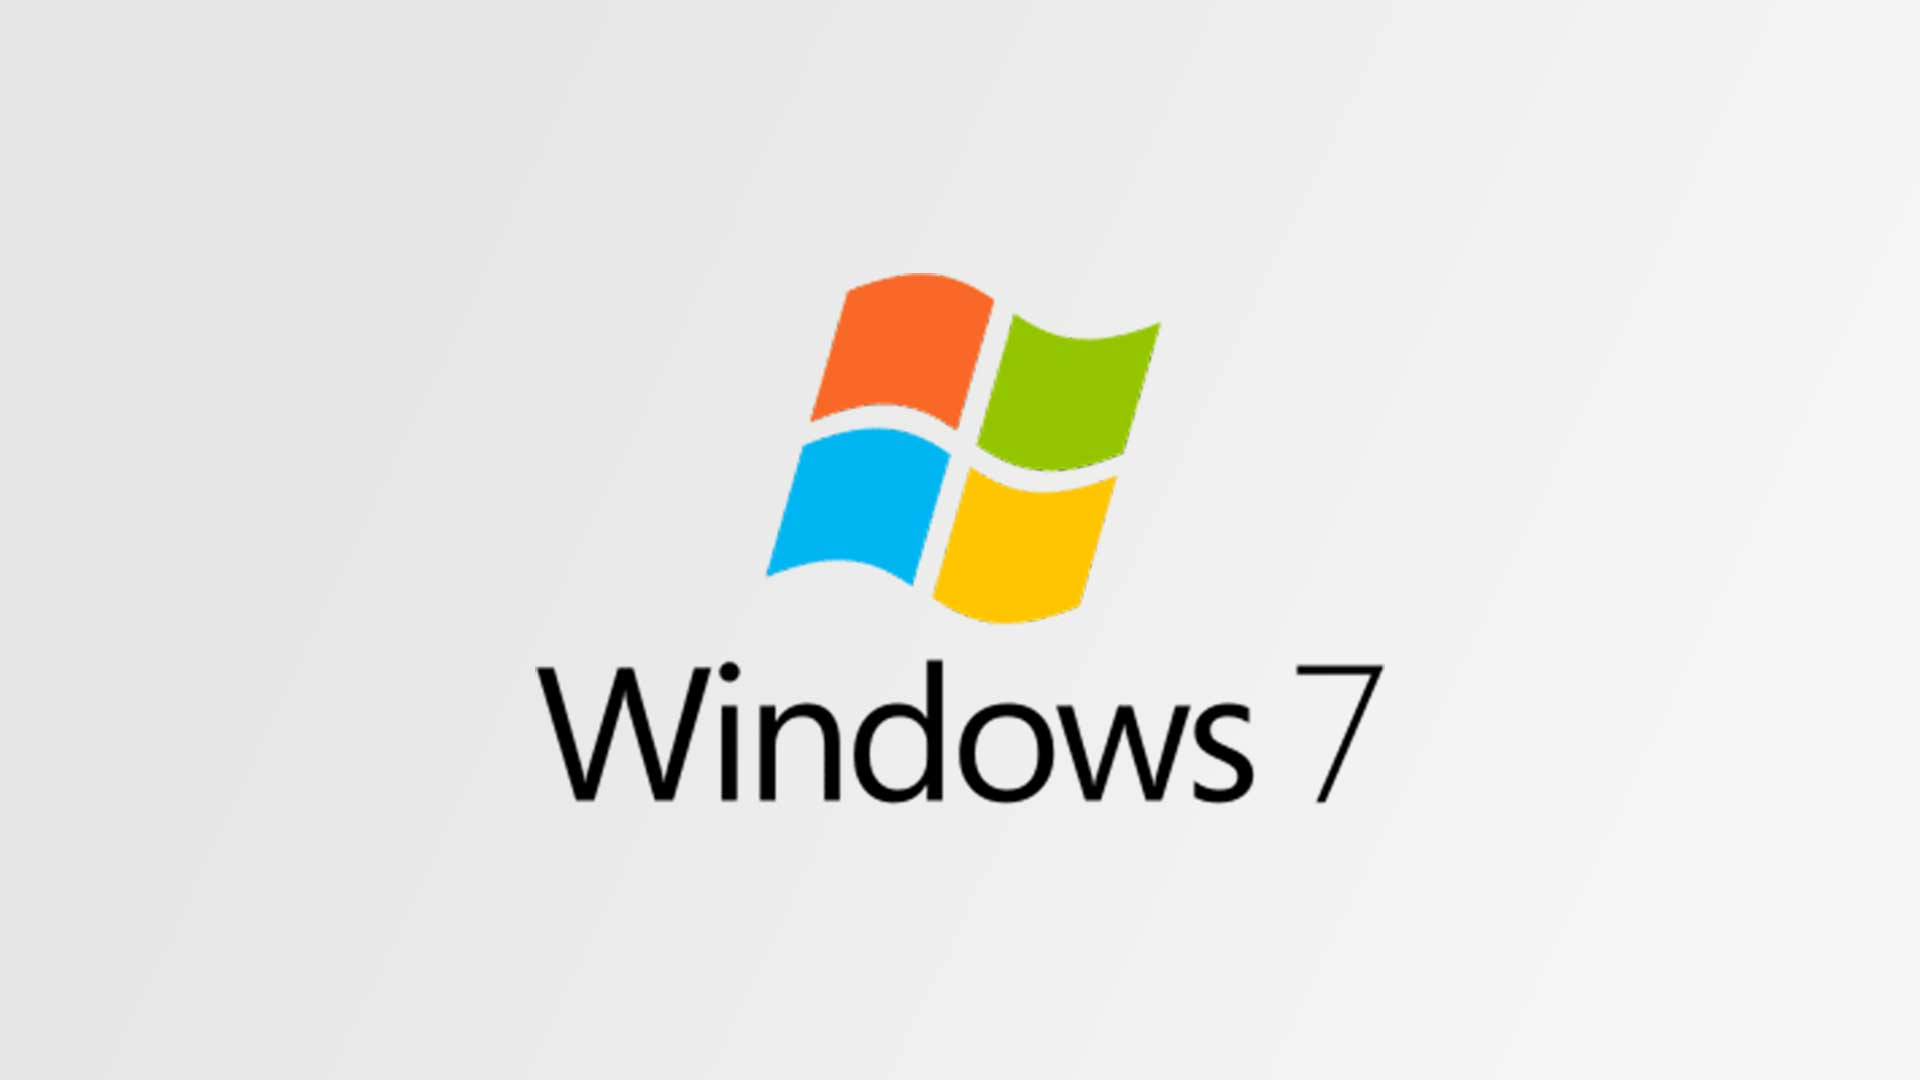 End of The Line for Windows 7 support